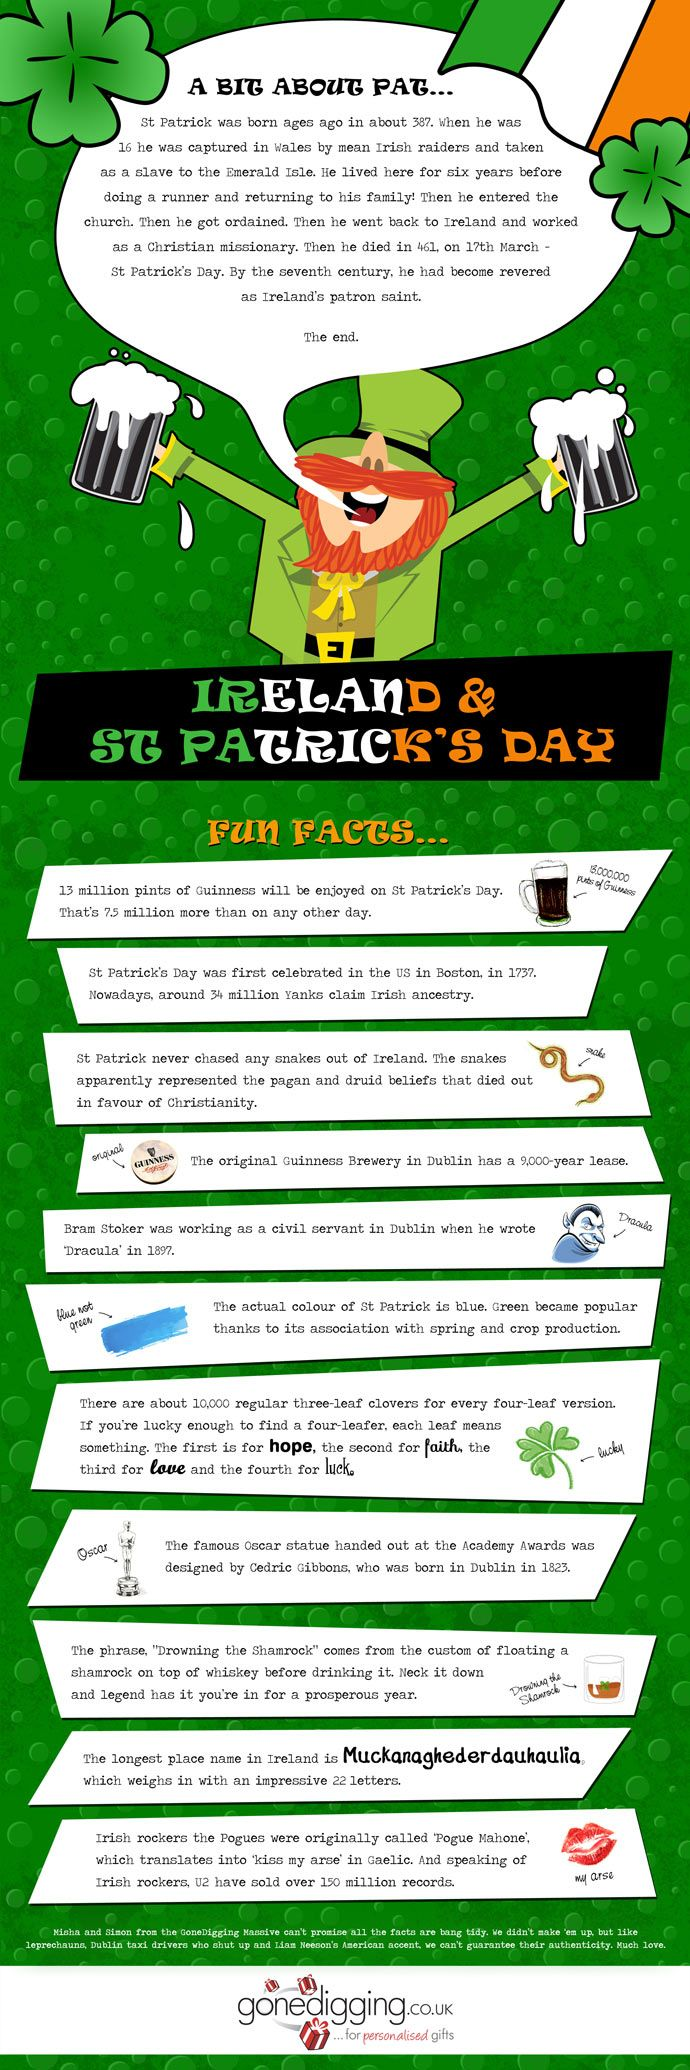 #Ireland and St. Patrick's Day #Patrick